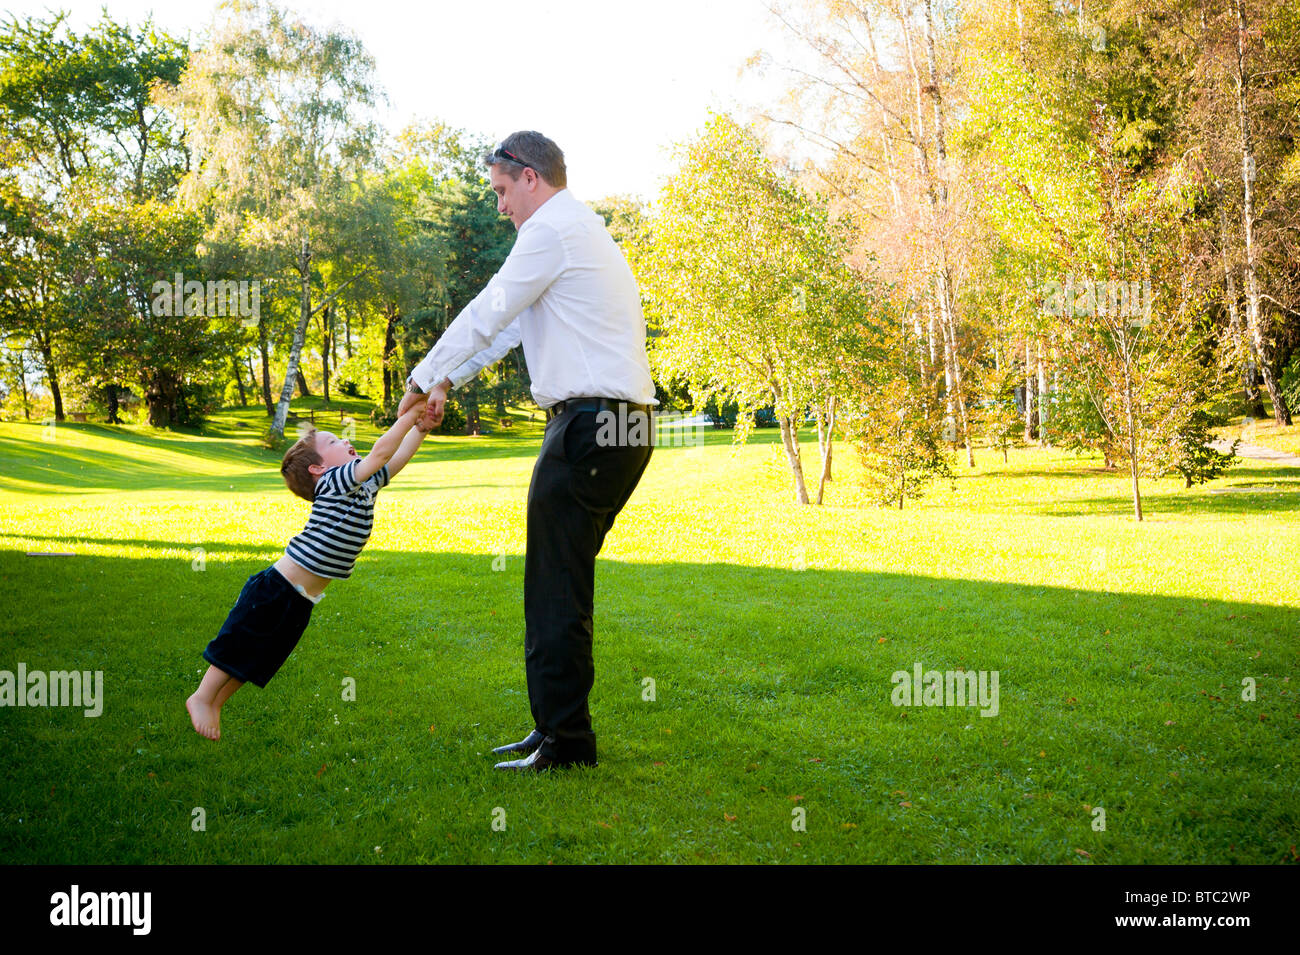 Man spinning around a little boy - Stock Image